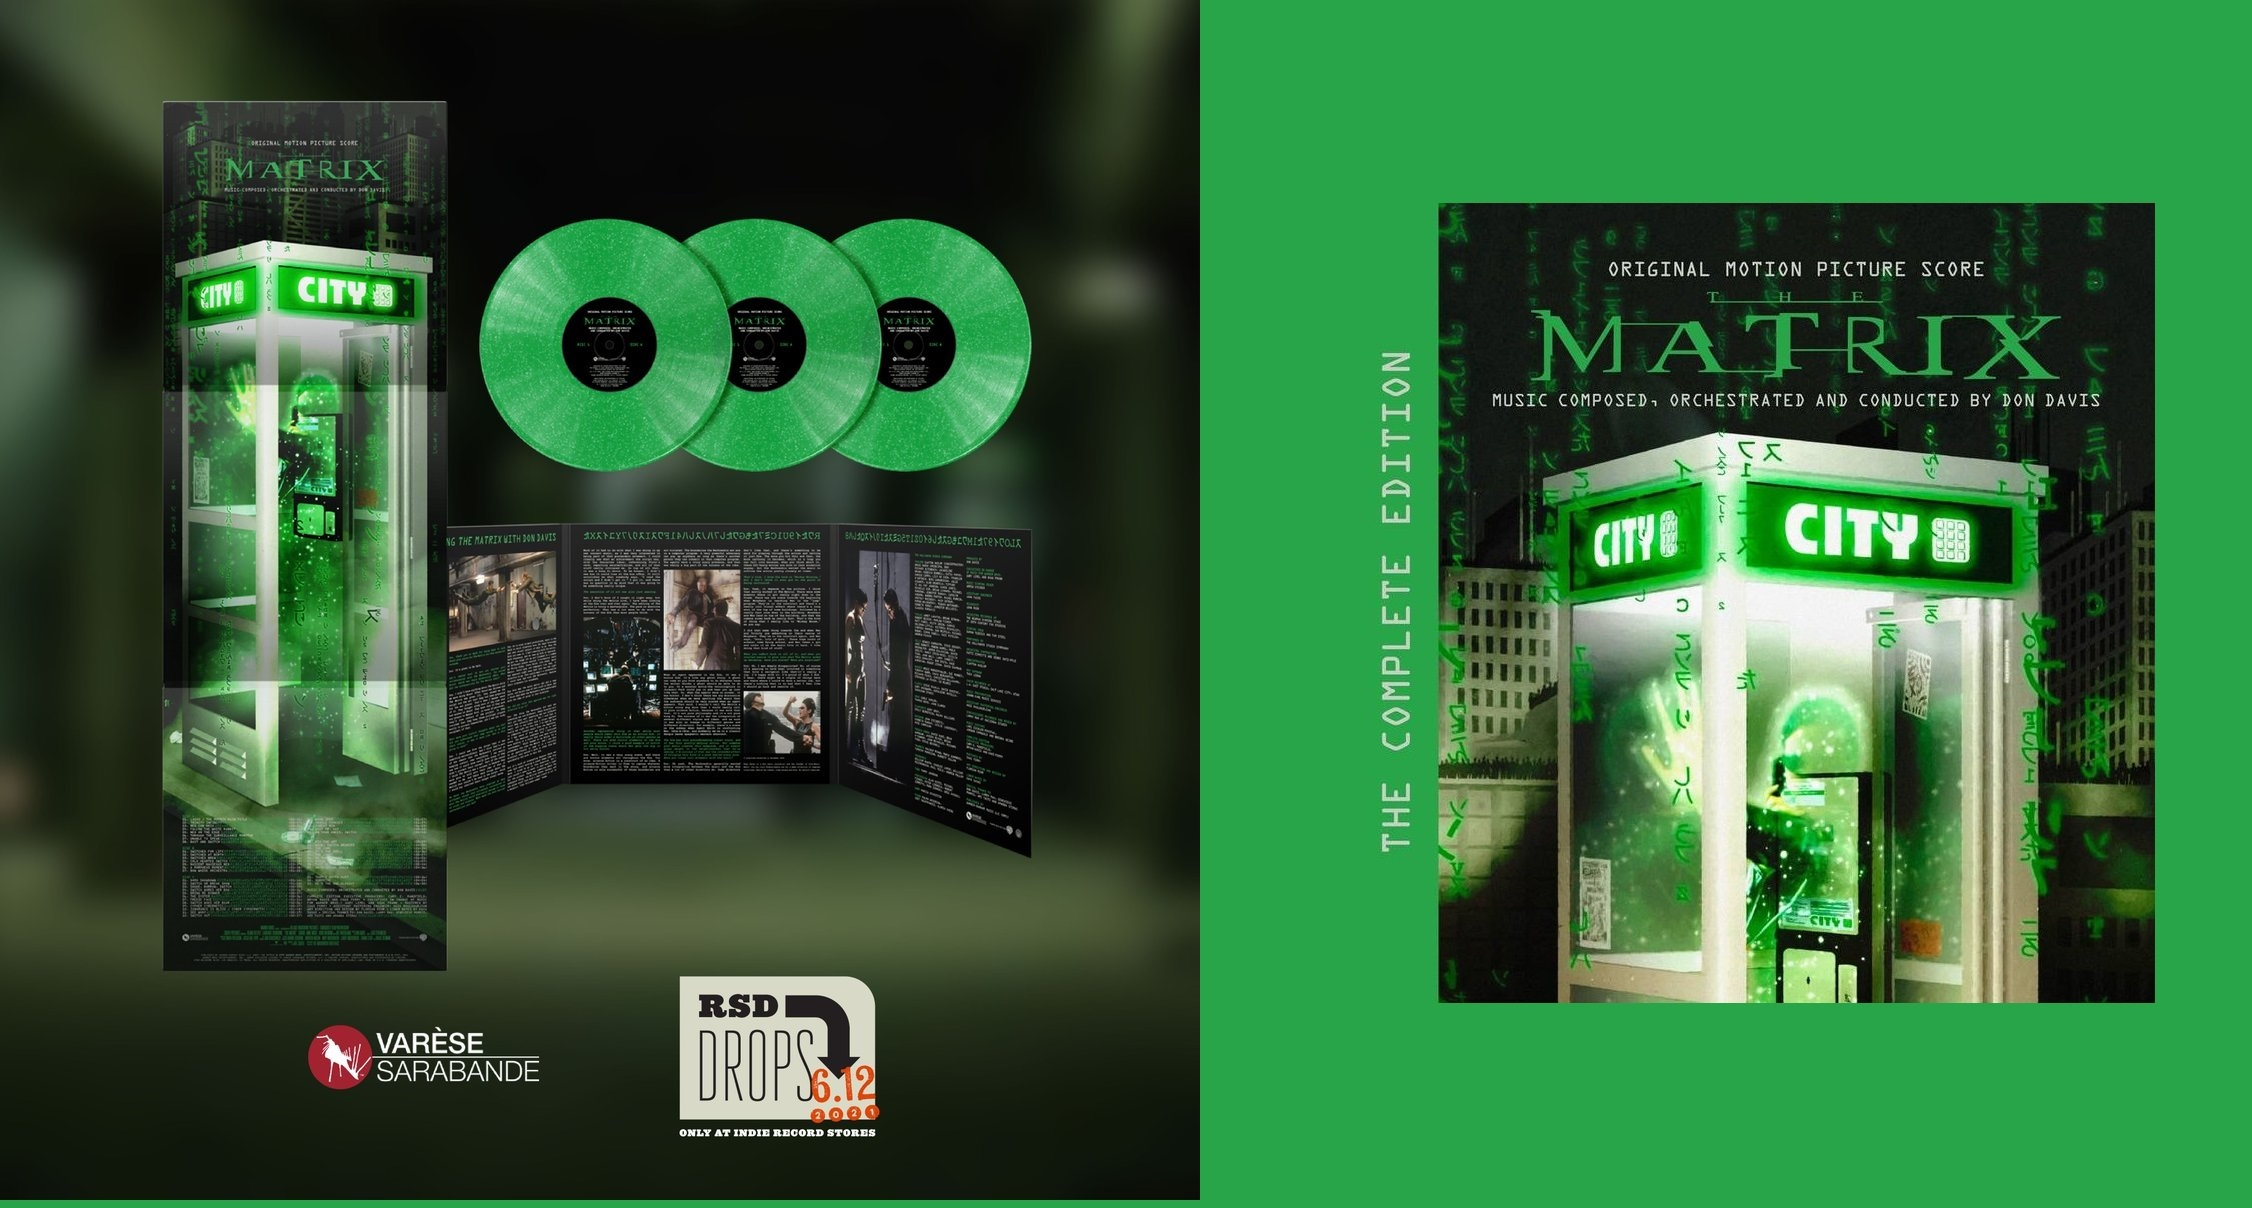 The Matrix (deluxe 3-LP set Record Store Day 2021)